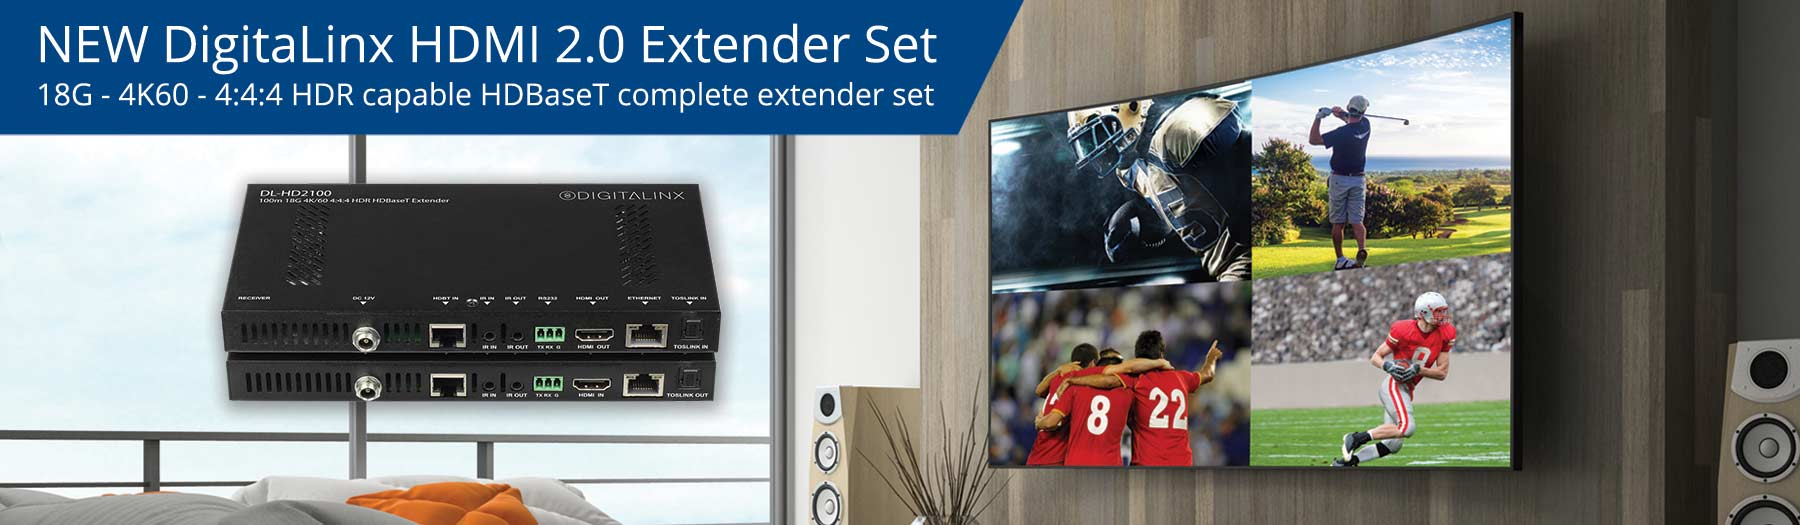 New 18G 4K60 HDMI HDBaseT Extender Set